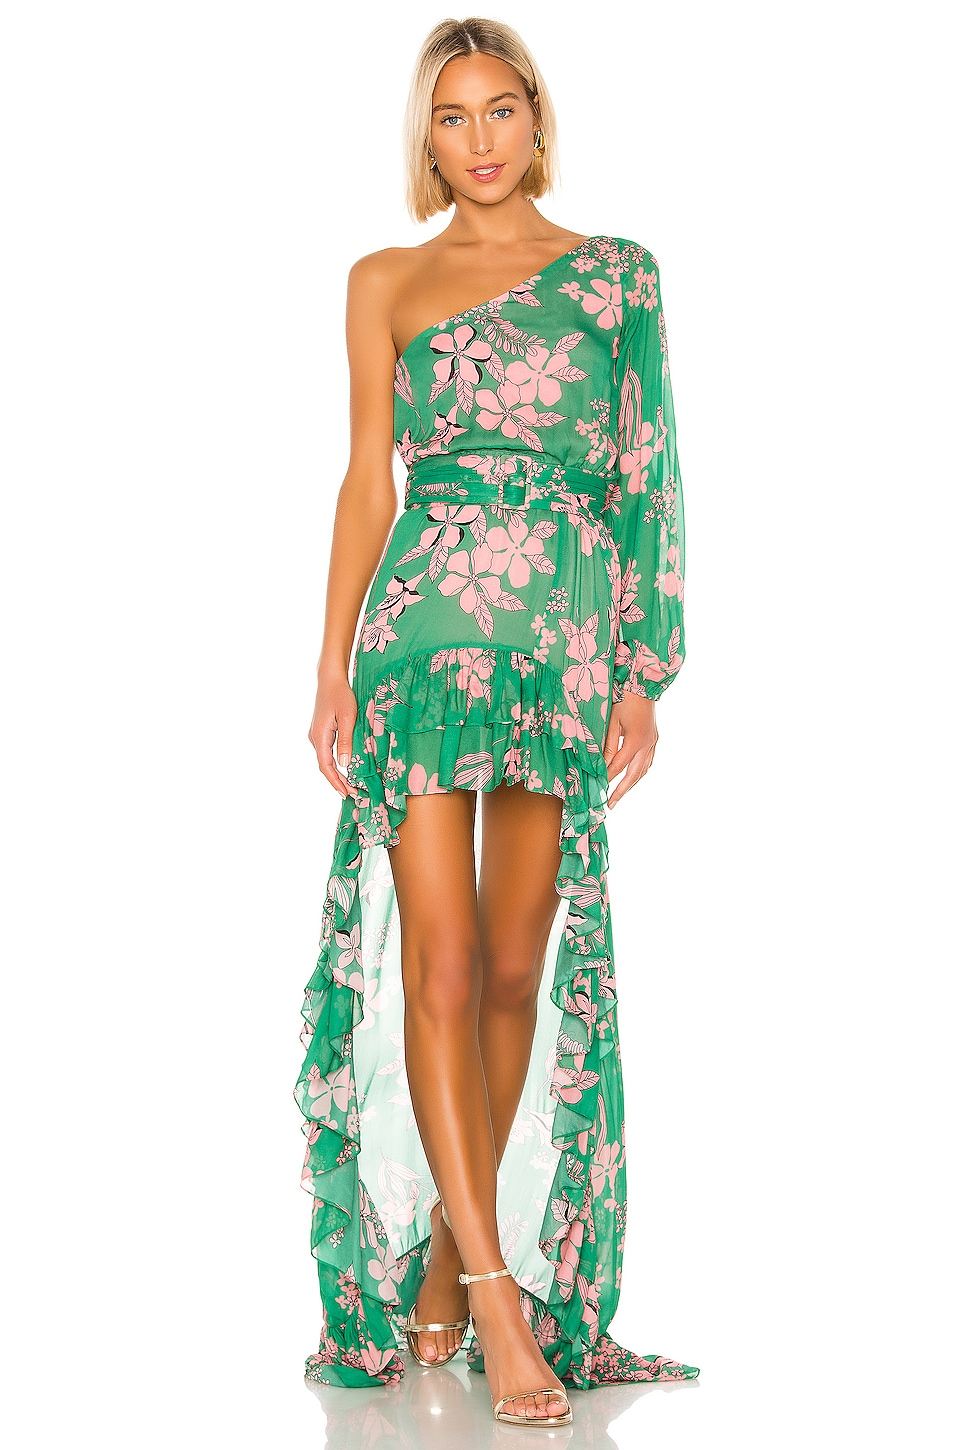 Alexis Jules Dress in Island Floral